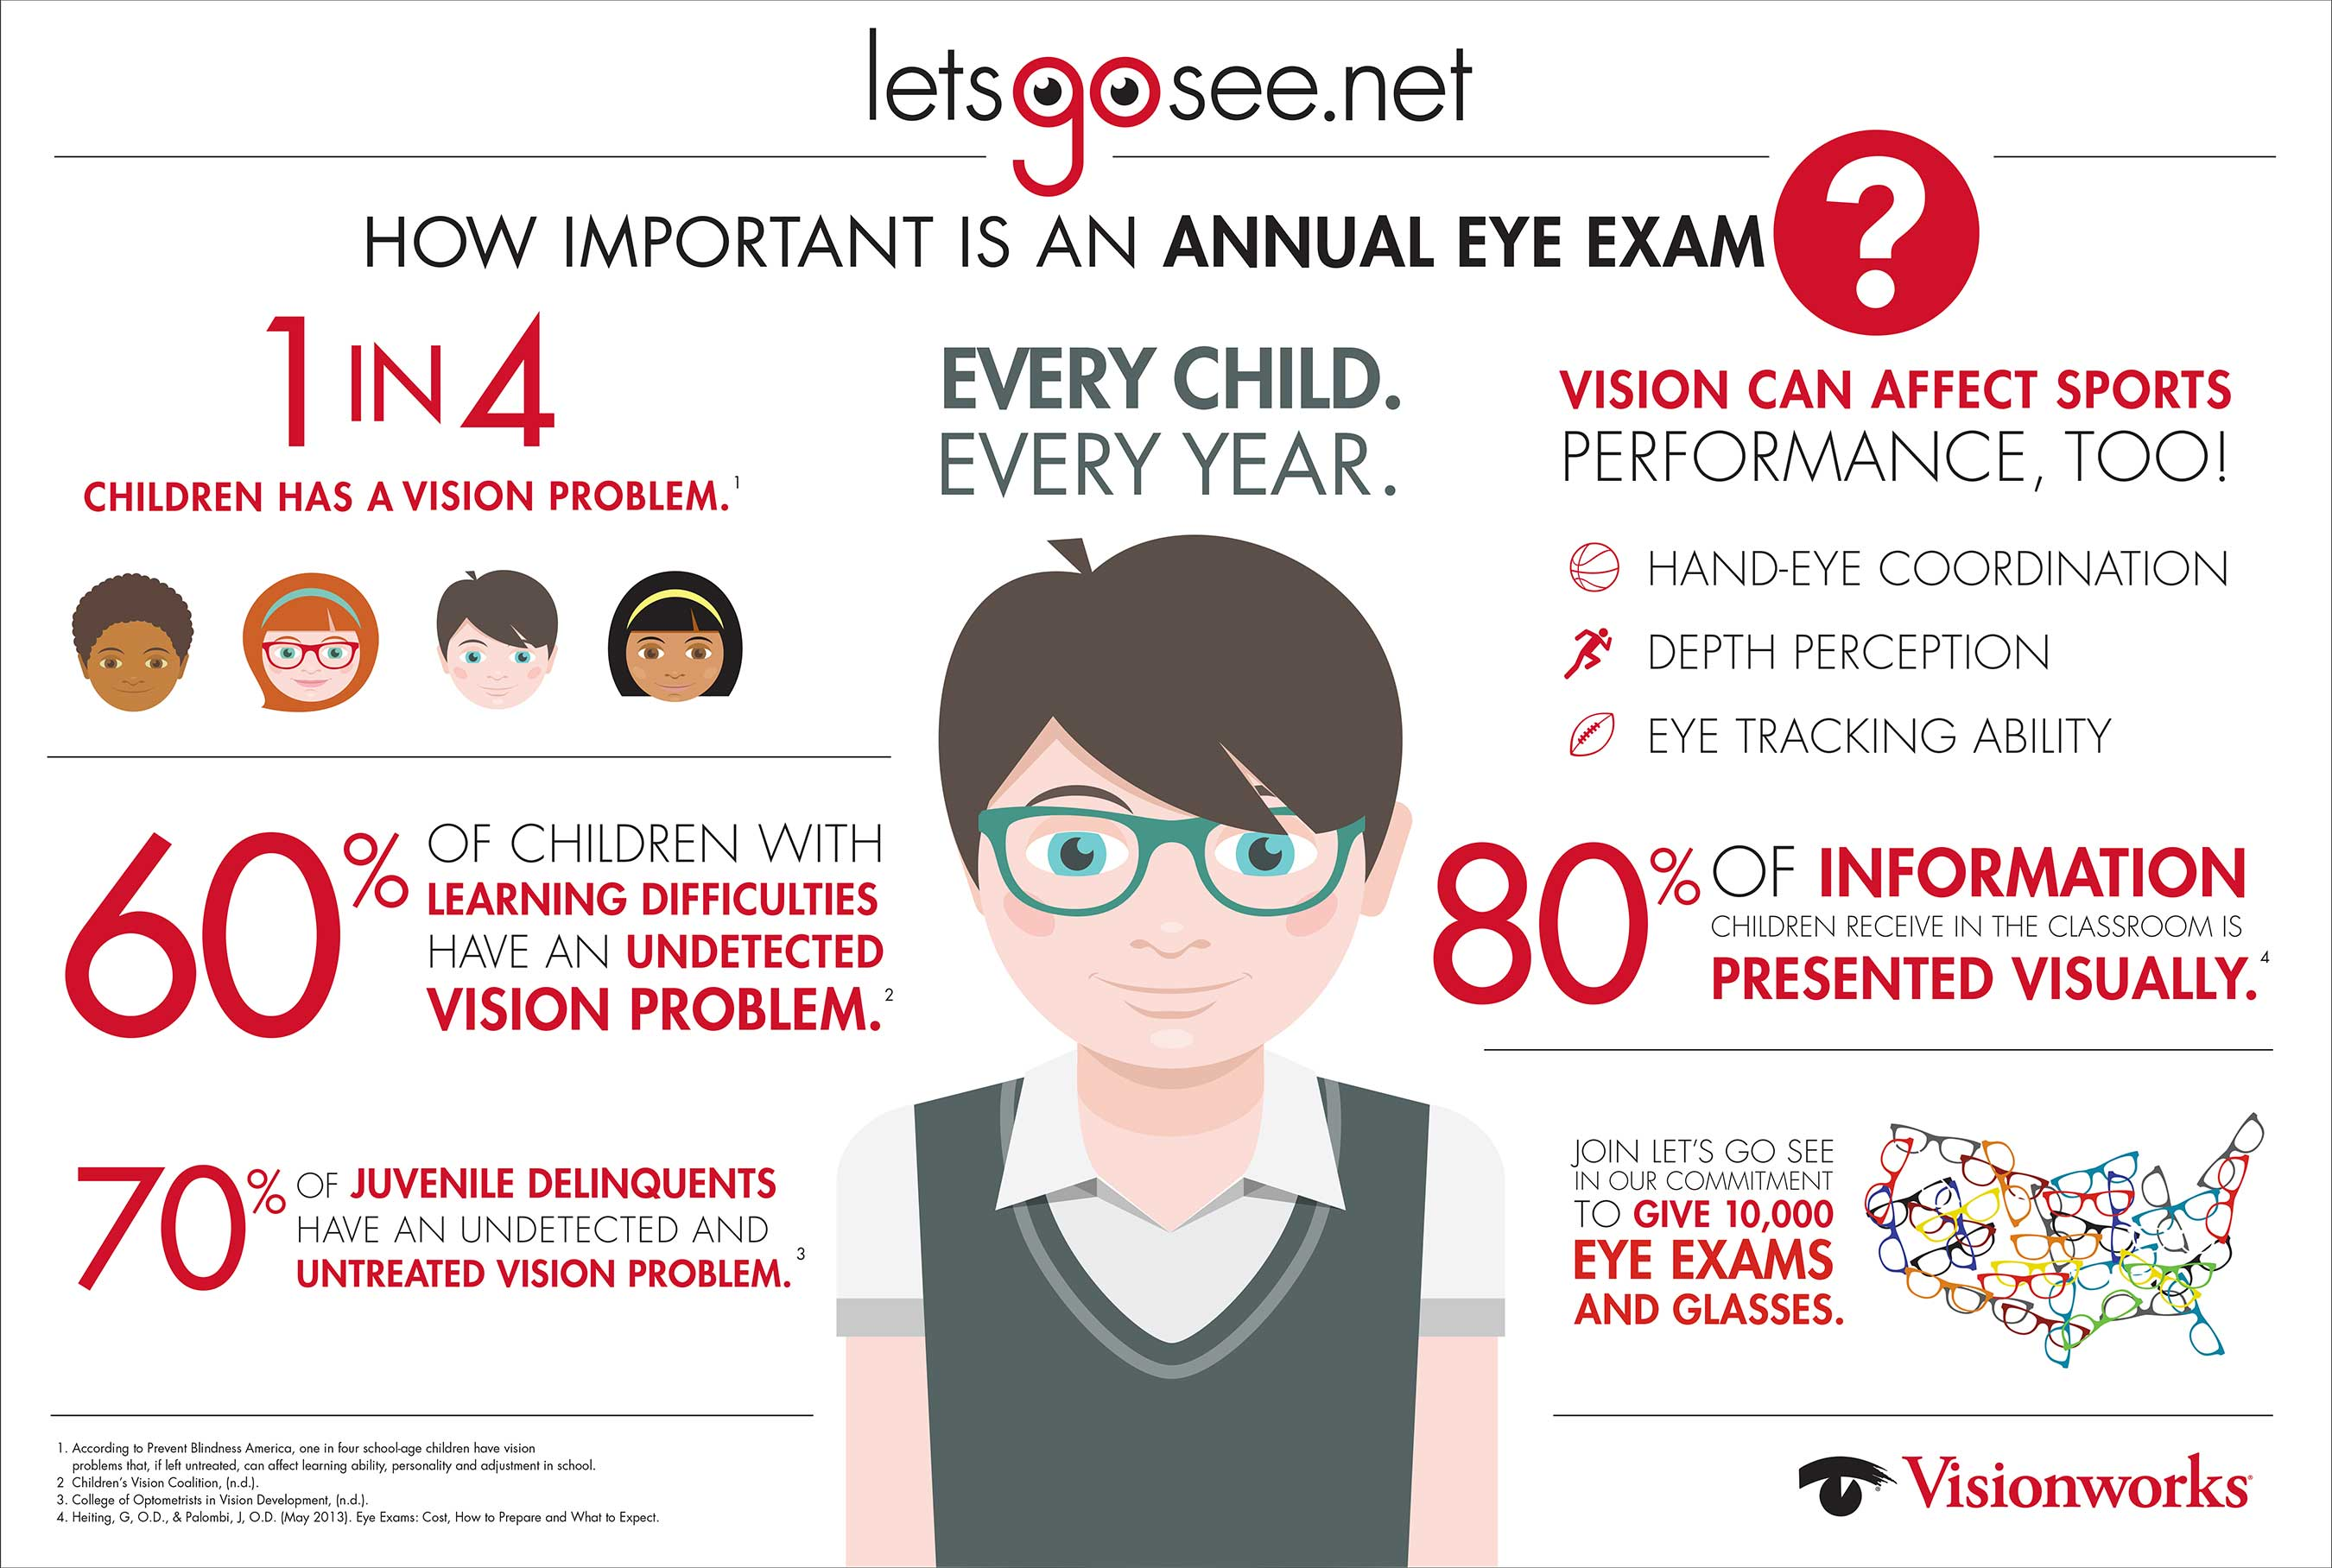 Visionworks Expands Reach To 15 000 Children In Need In